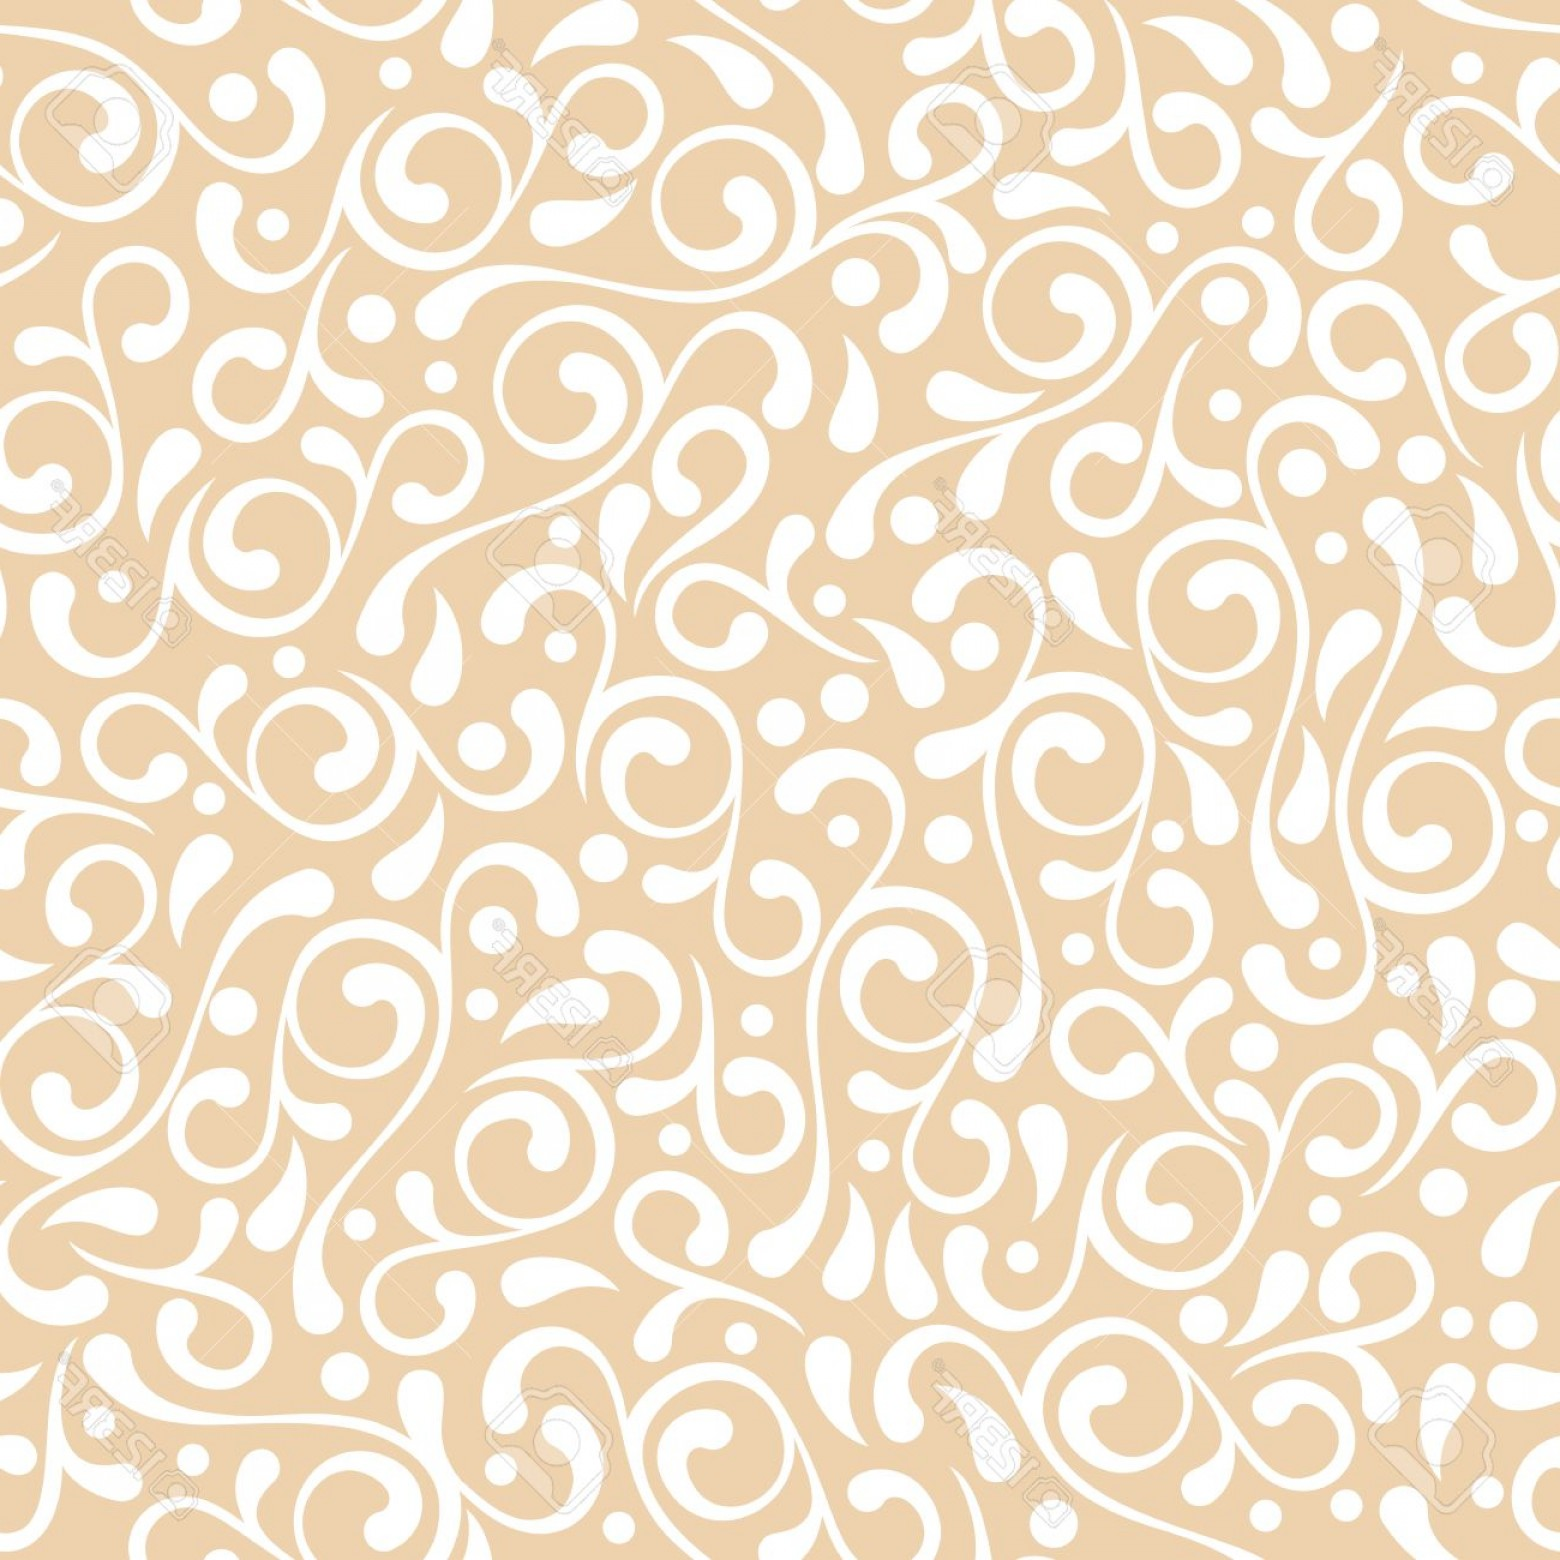 Vector Flourish Backgrounds: Photostock Vector Vector Seamless Pastel Beige Flourish Pattern Vintage Decorative Background Floral Design For Fashio